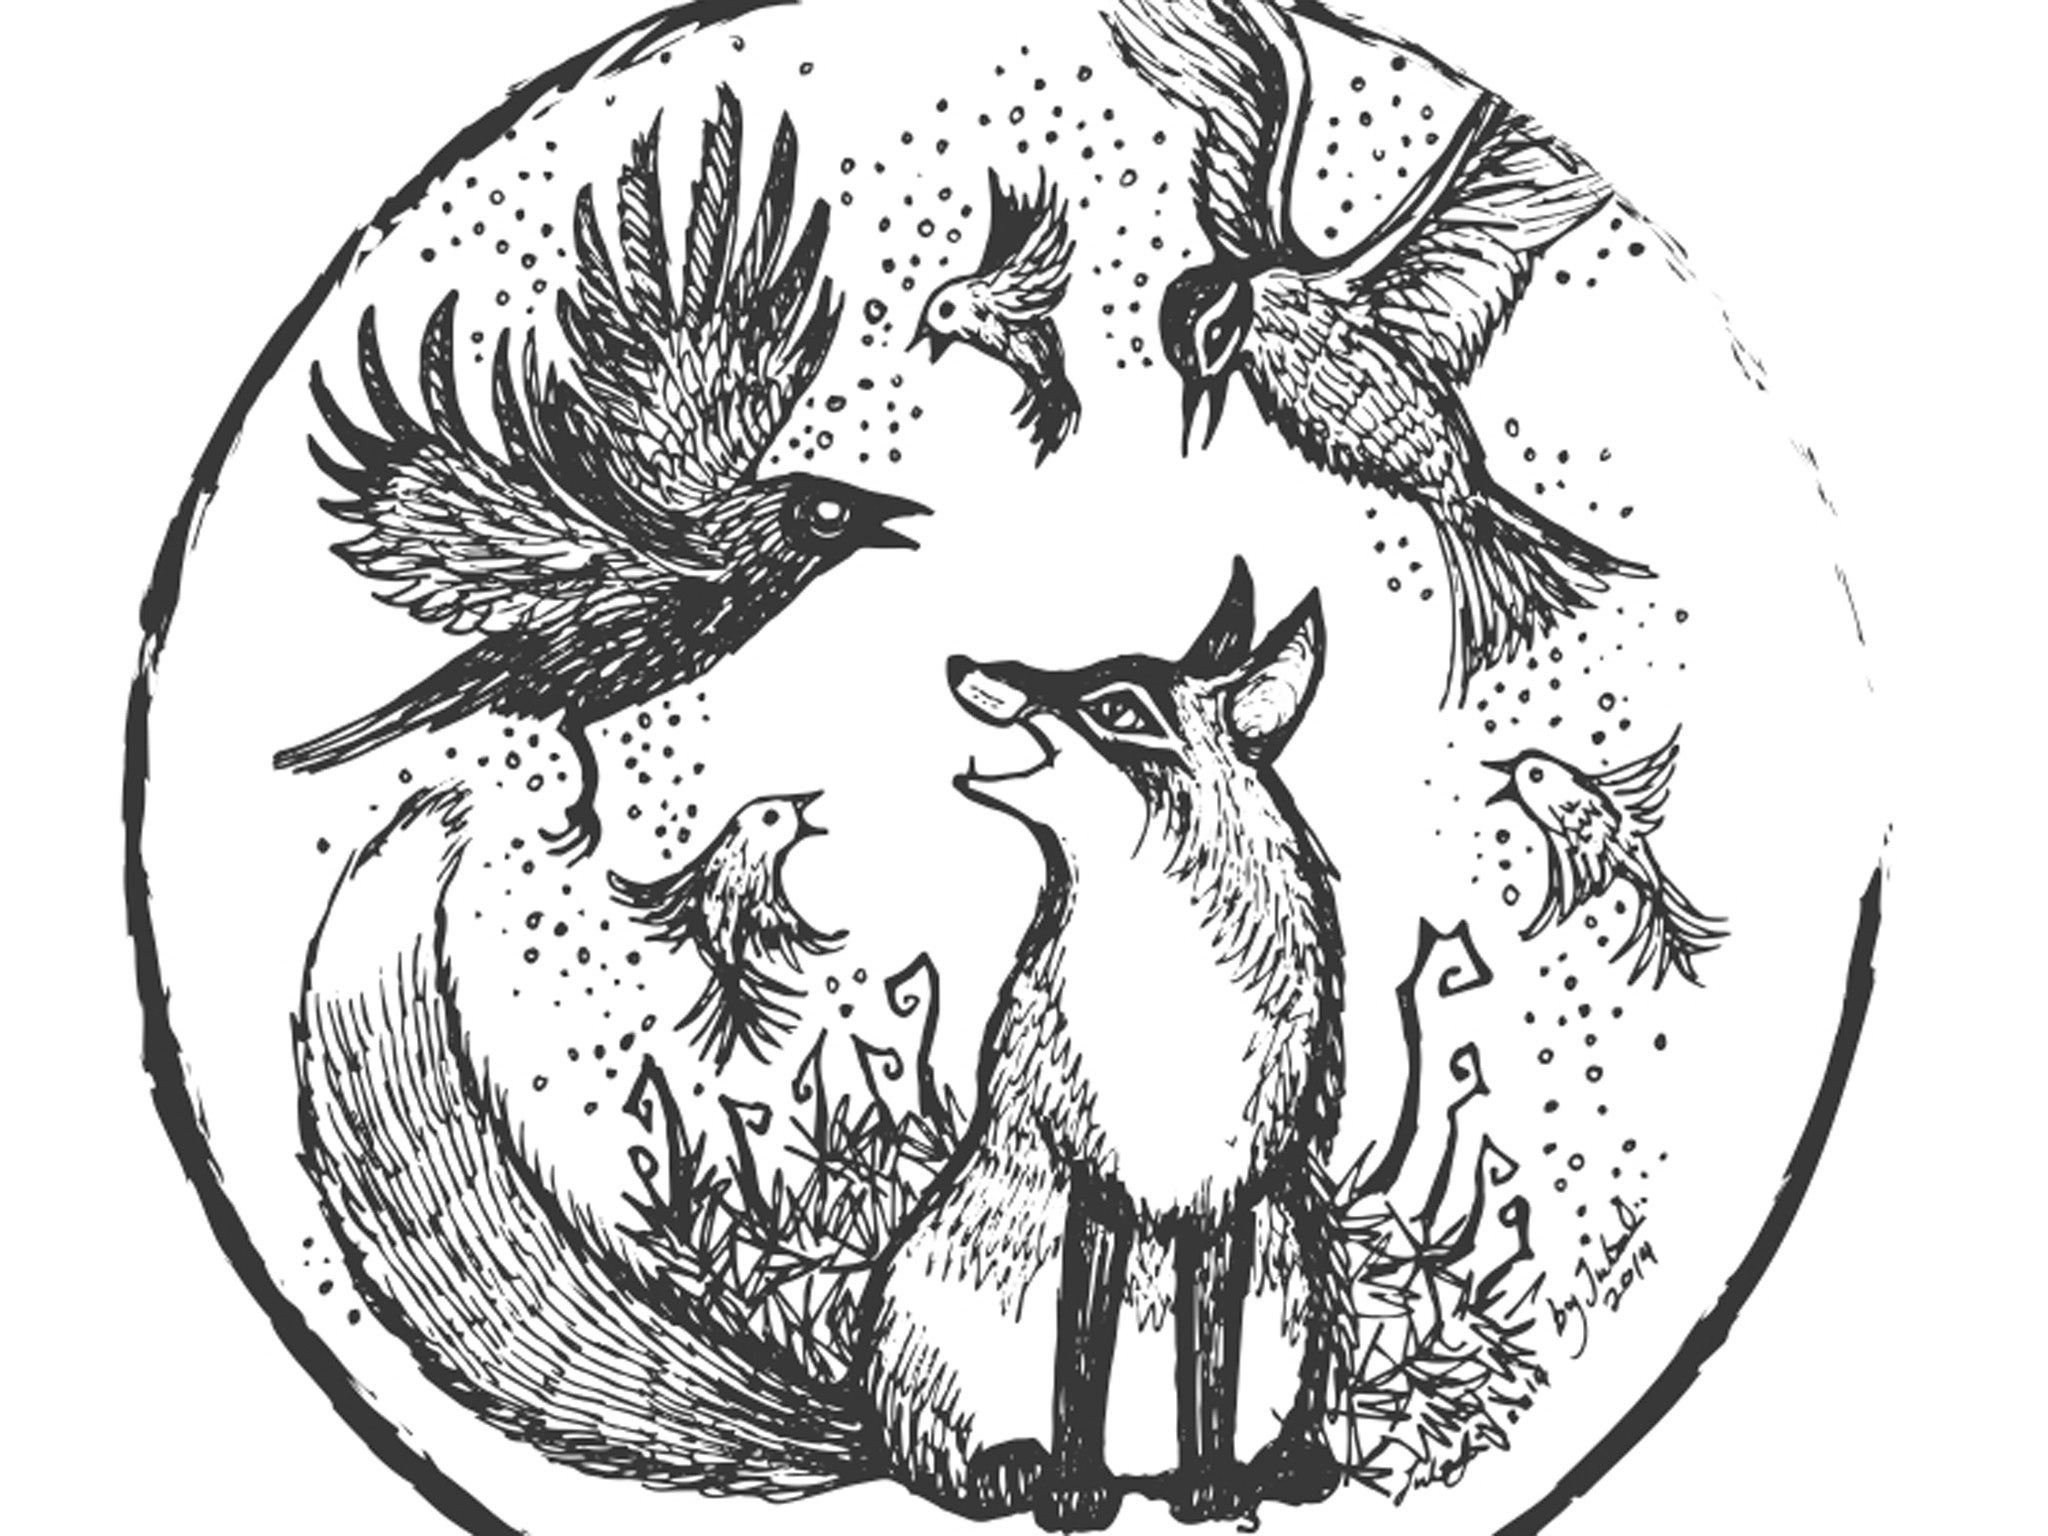 Cunning As A Fox The Animal Kingdom S Most Hunted Hero Has Its Roots In Myth And Legend The Independent The Independent